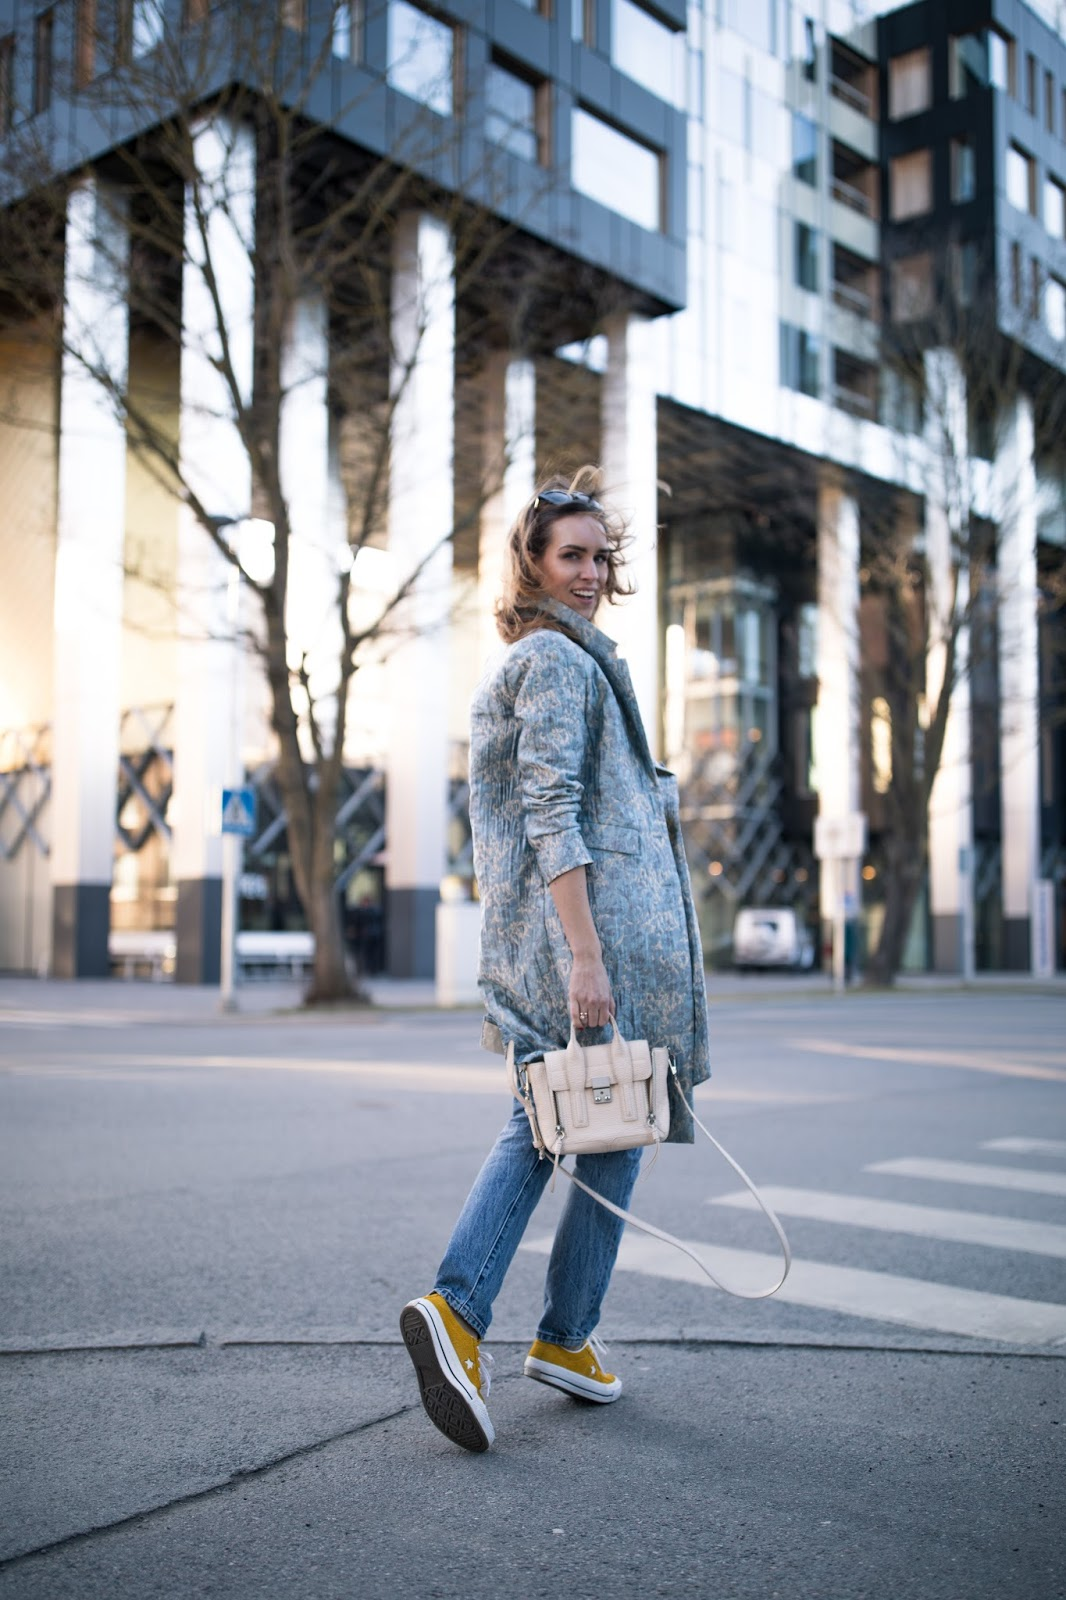 blue coat jeans sneakers outfit